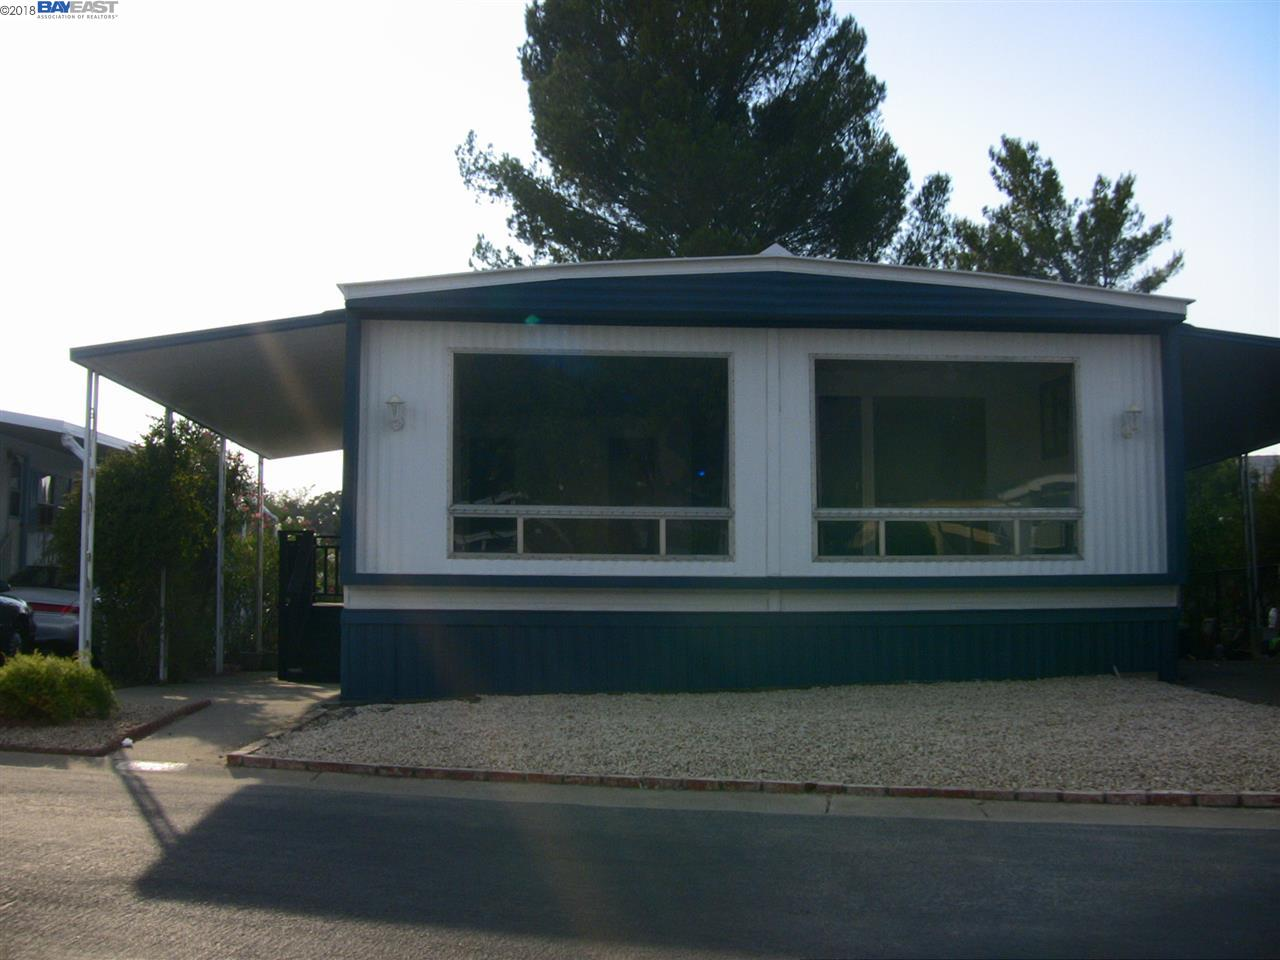 711 OLD CANYON ROAD, FREMONT, CA 94536